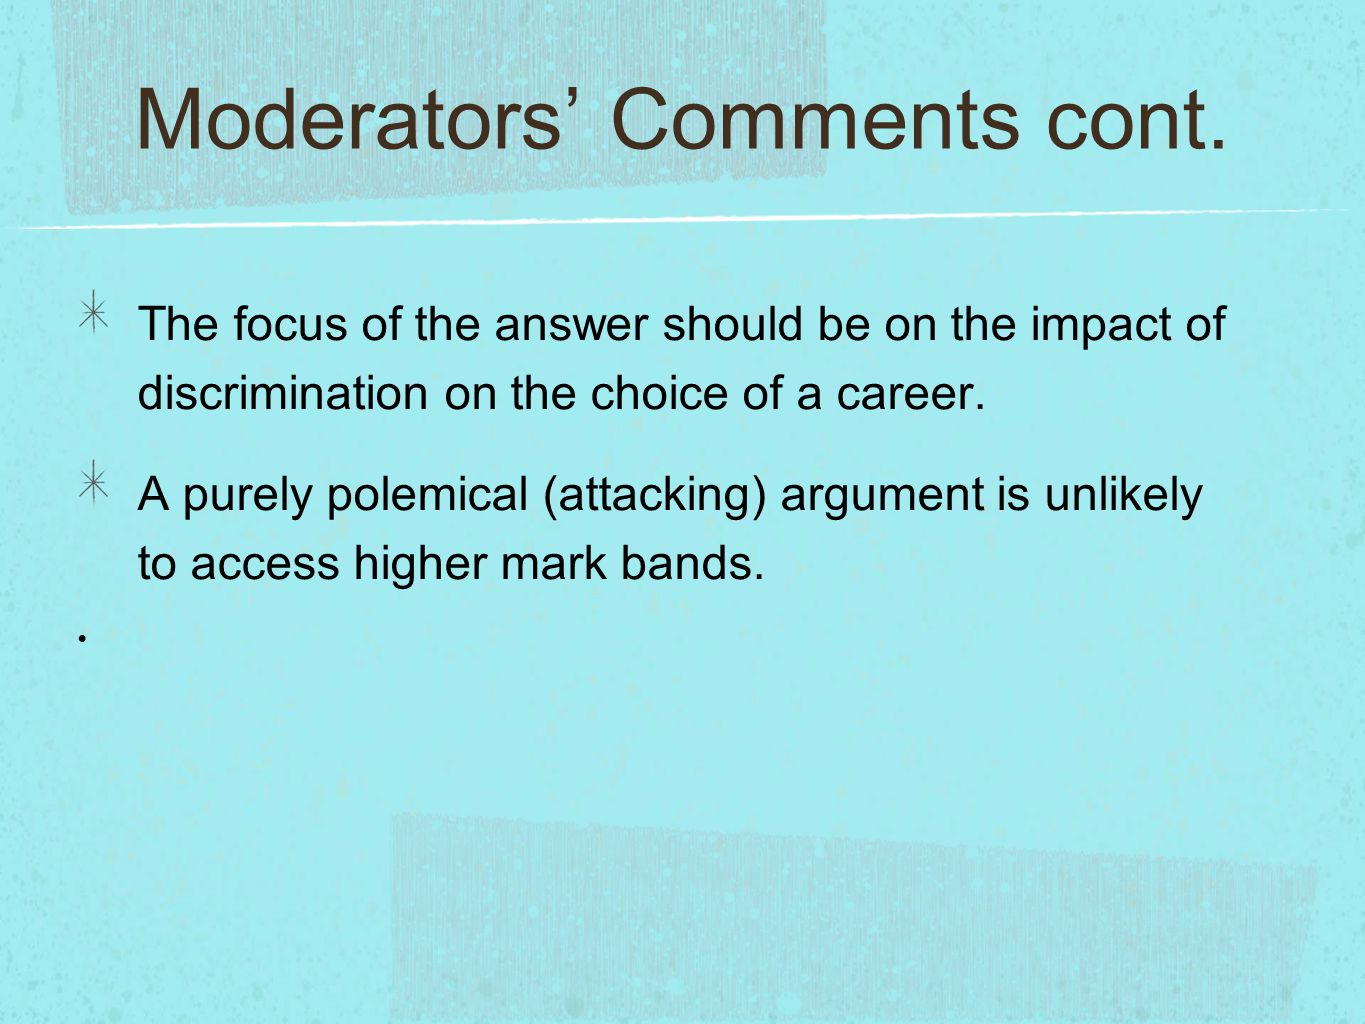 Moderators' Comments cont.